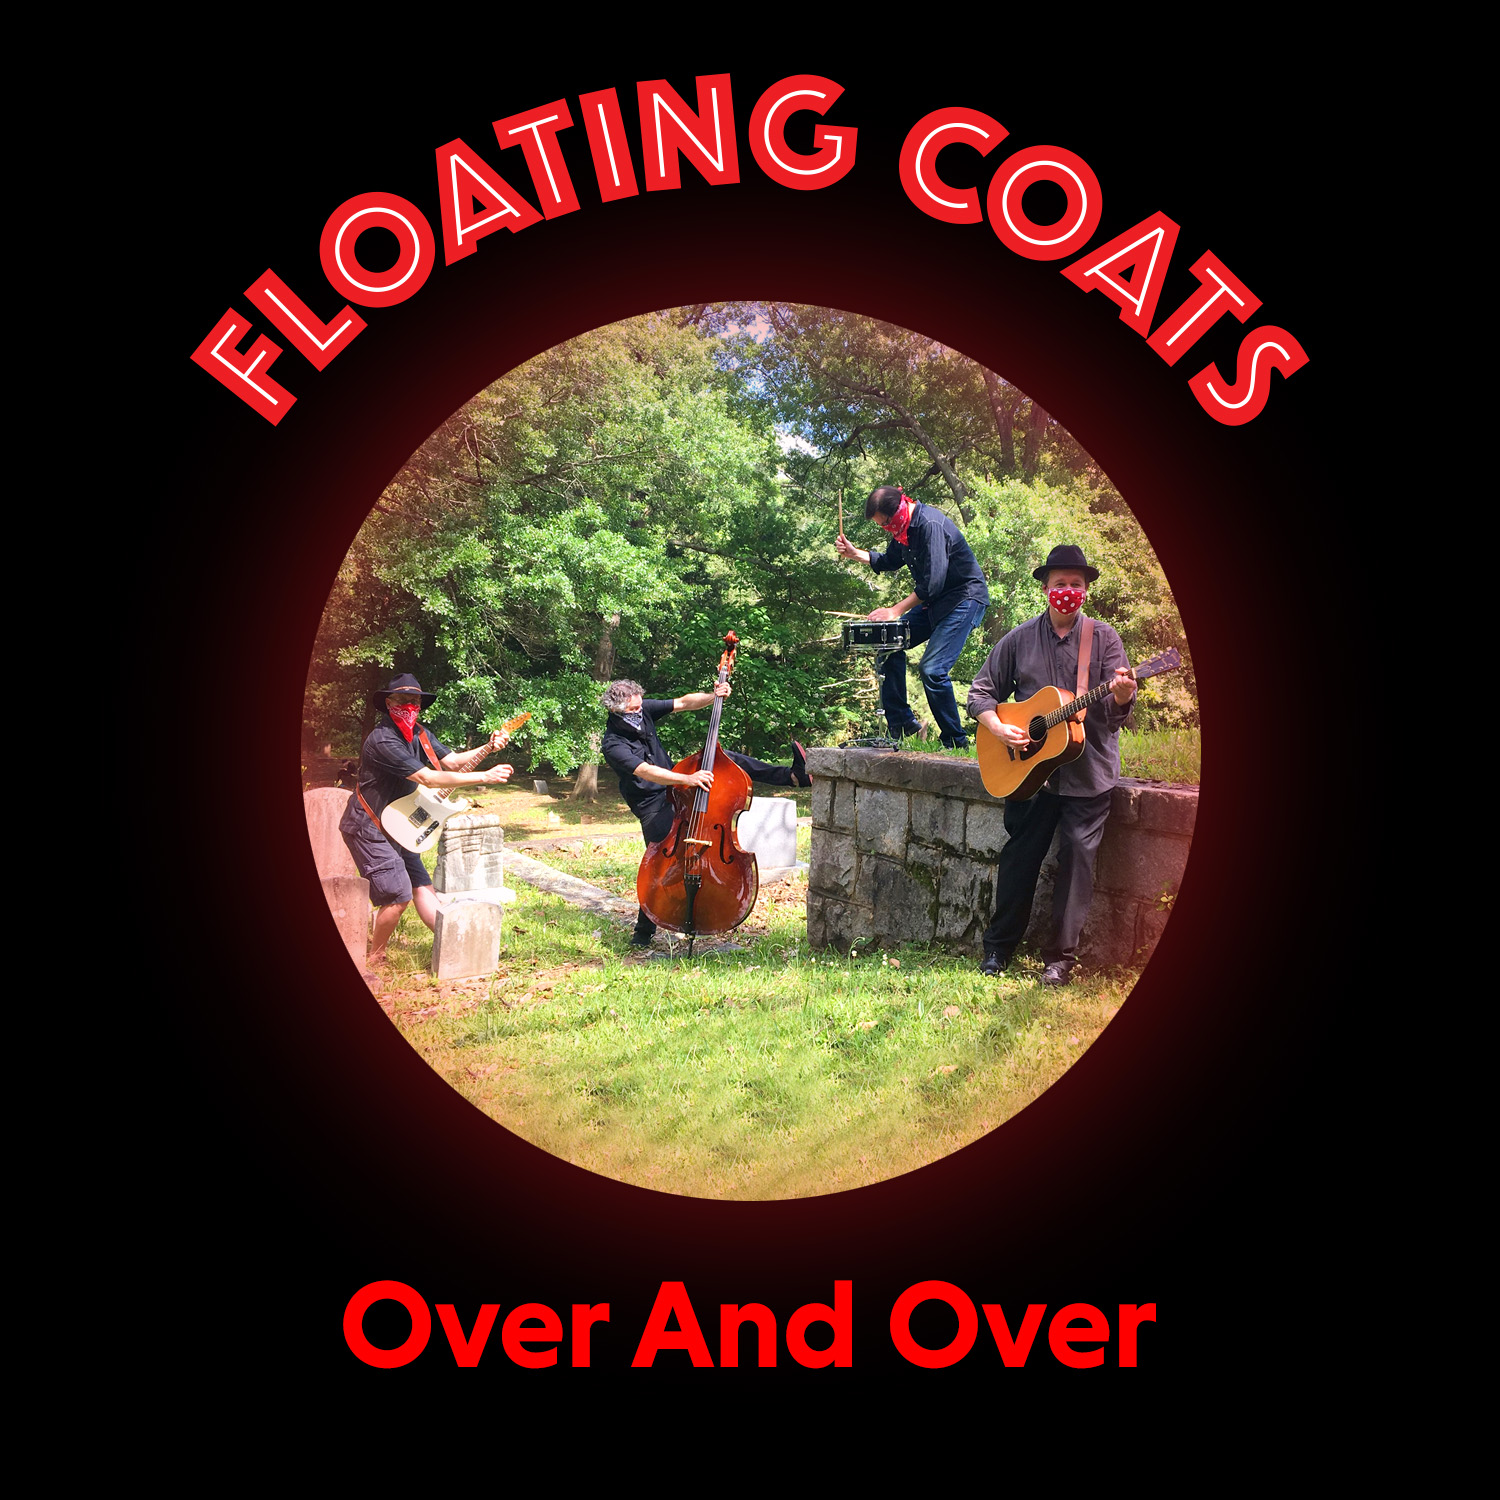 Over And Over / Floating Coats